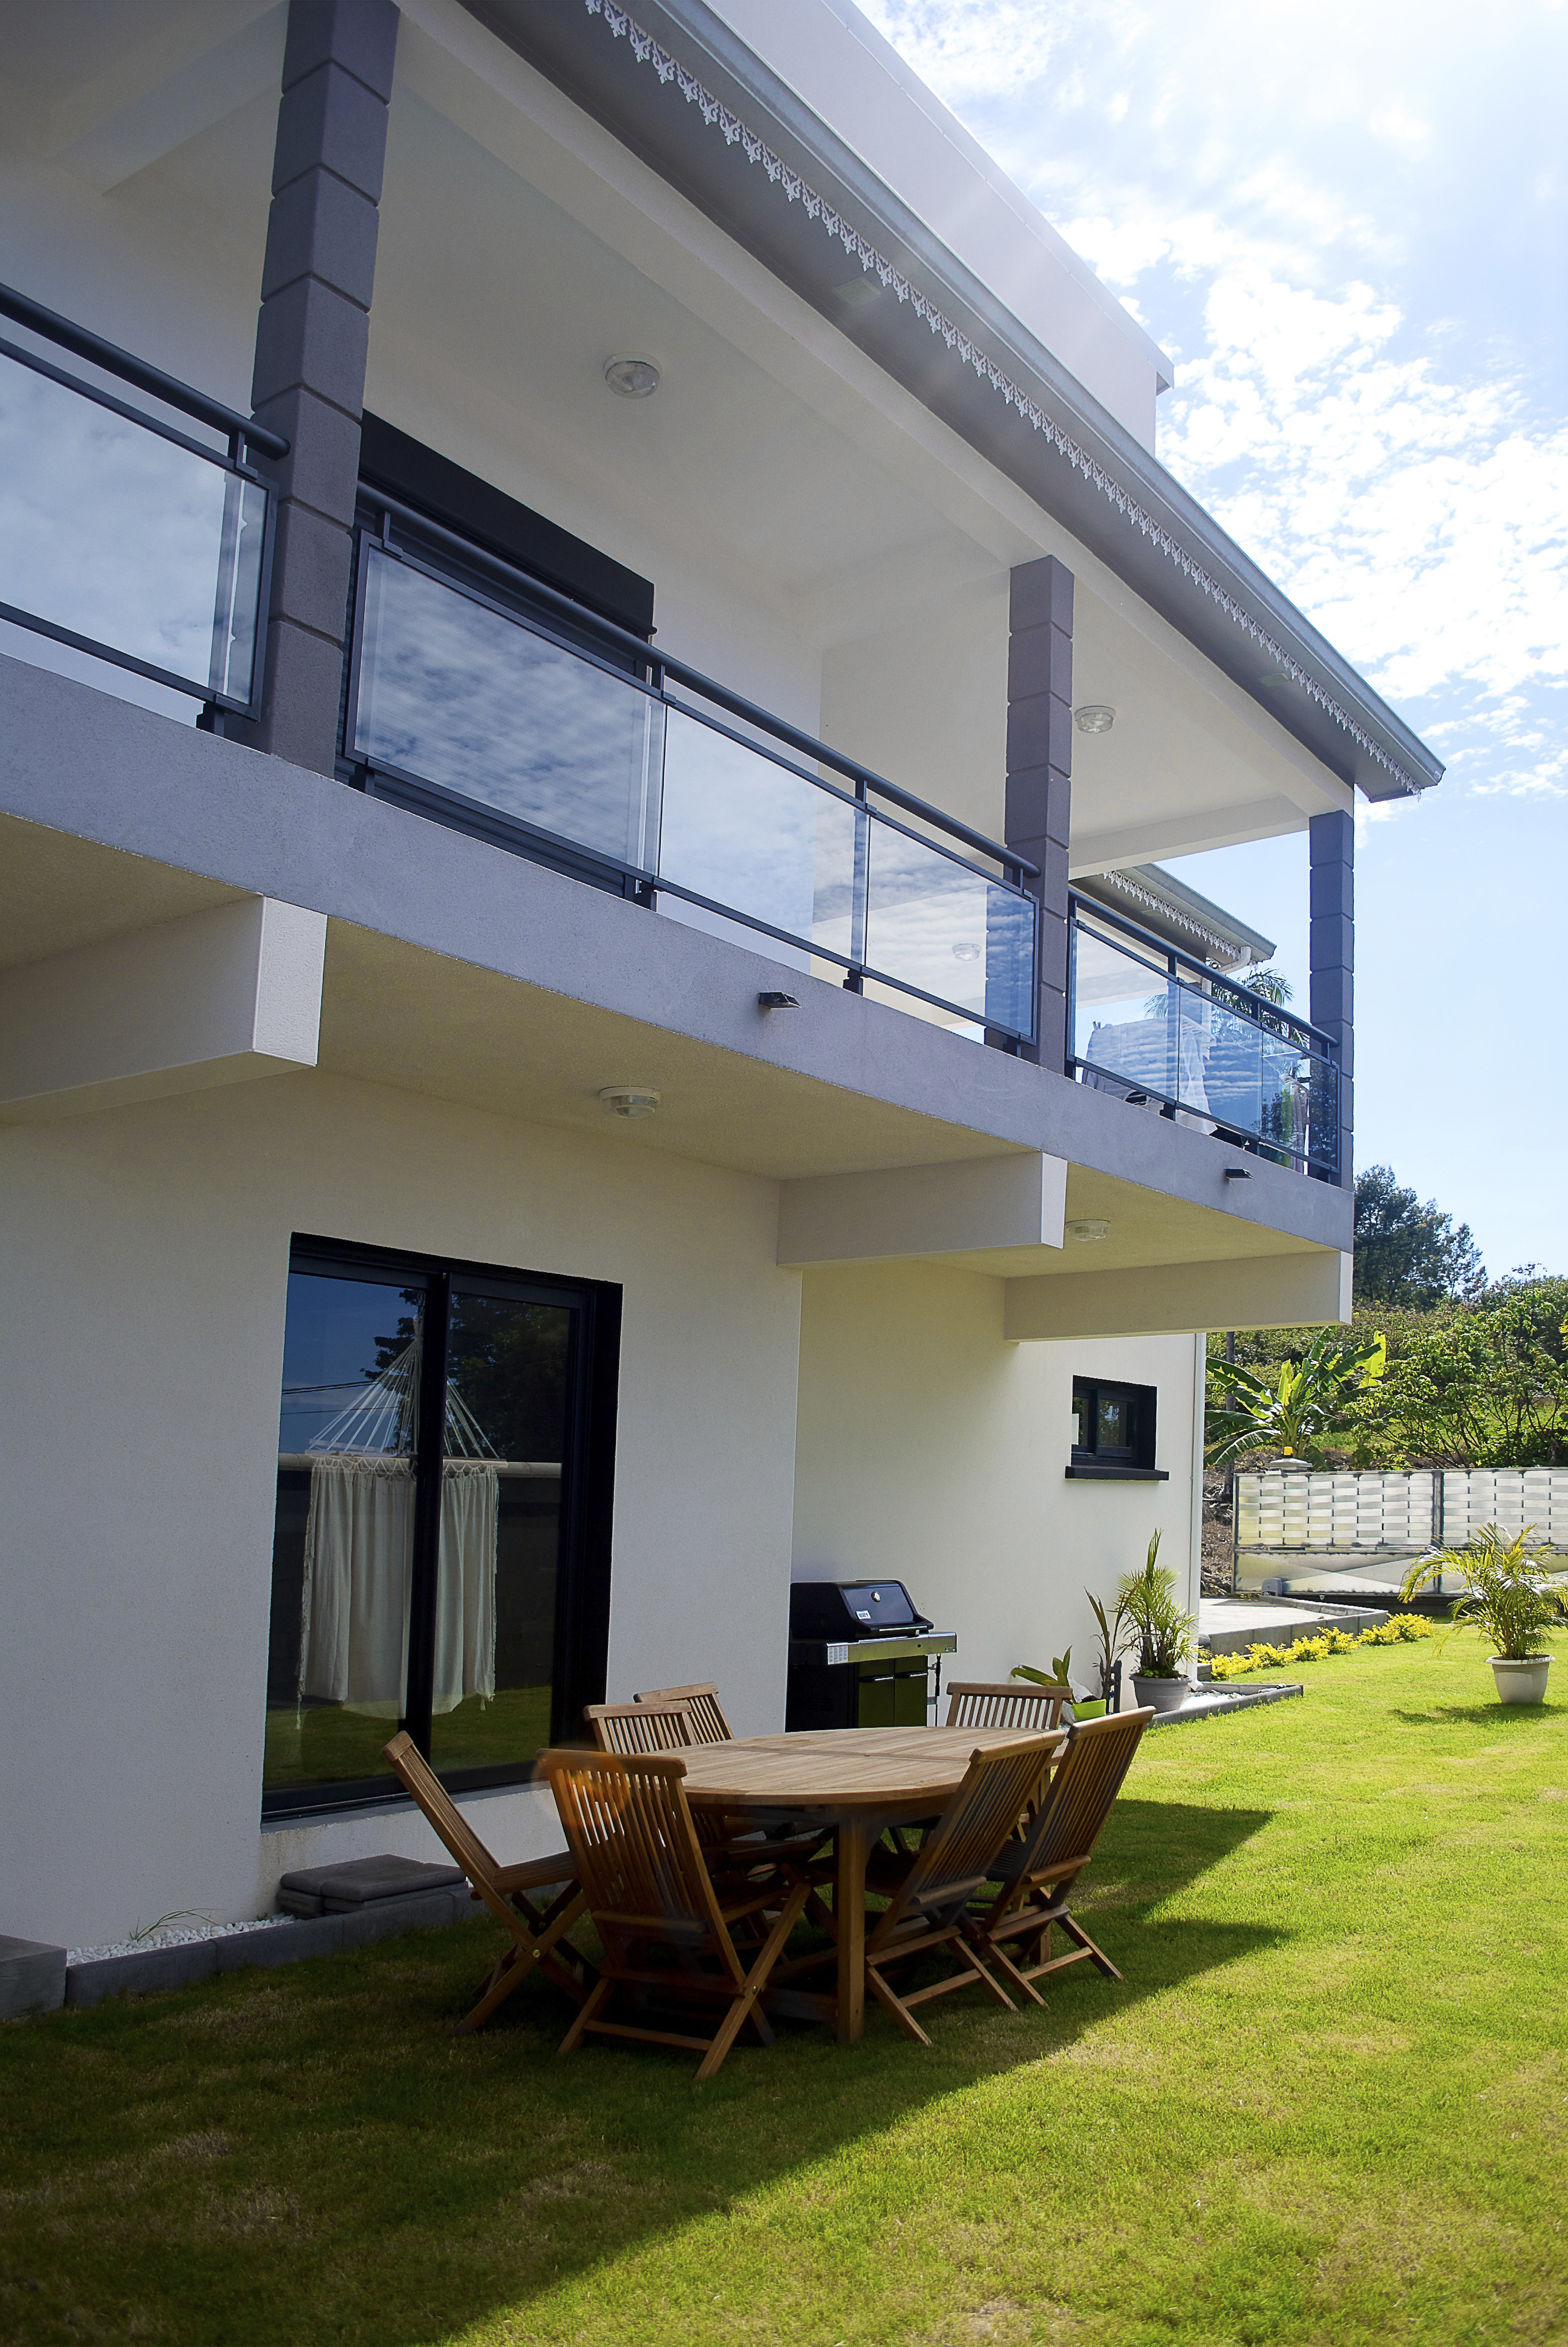 Why choose your aluminum balustrades?